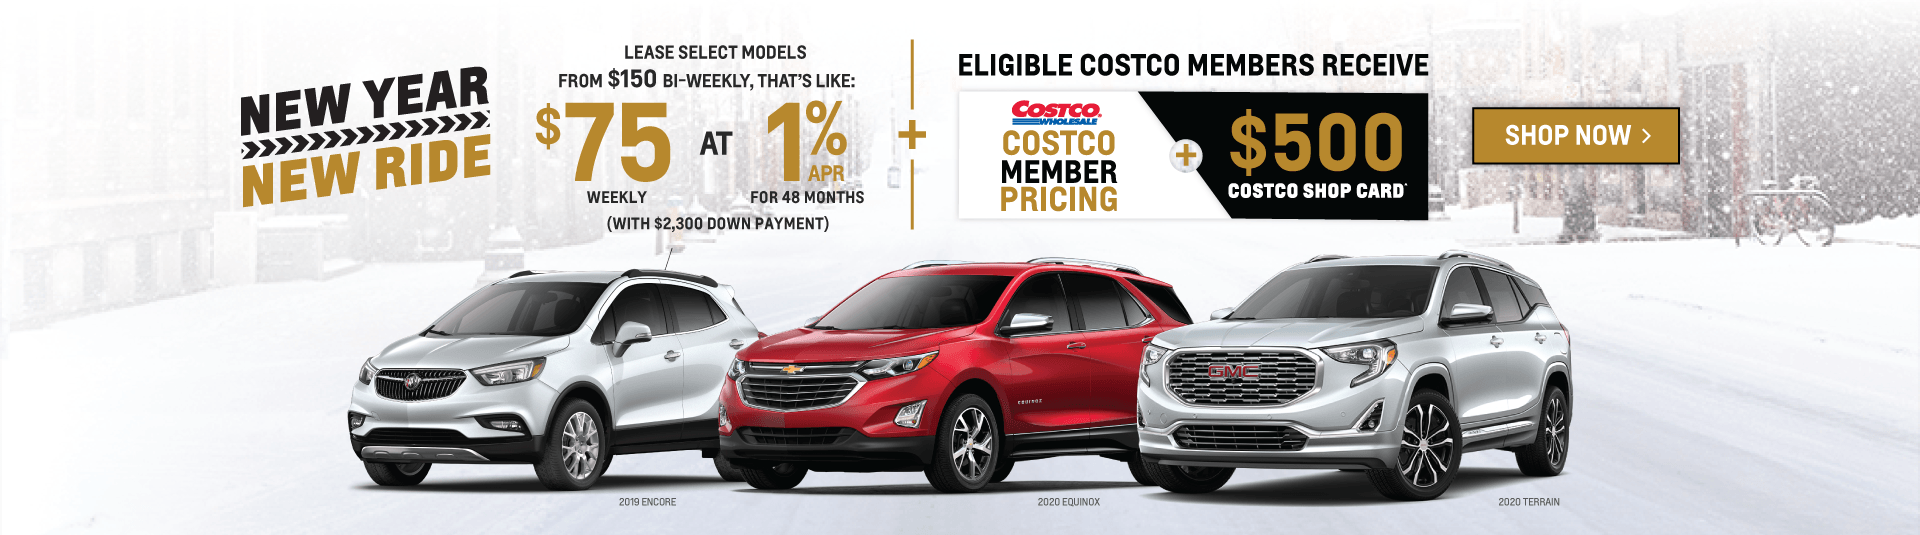 Chevrolet, Buick, GMC SUV New Year, New Ride Sale Event in Mississauga